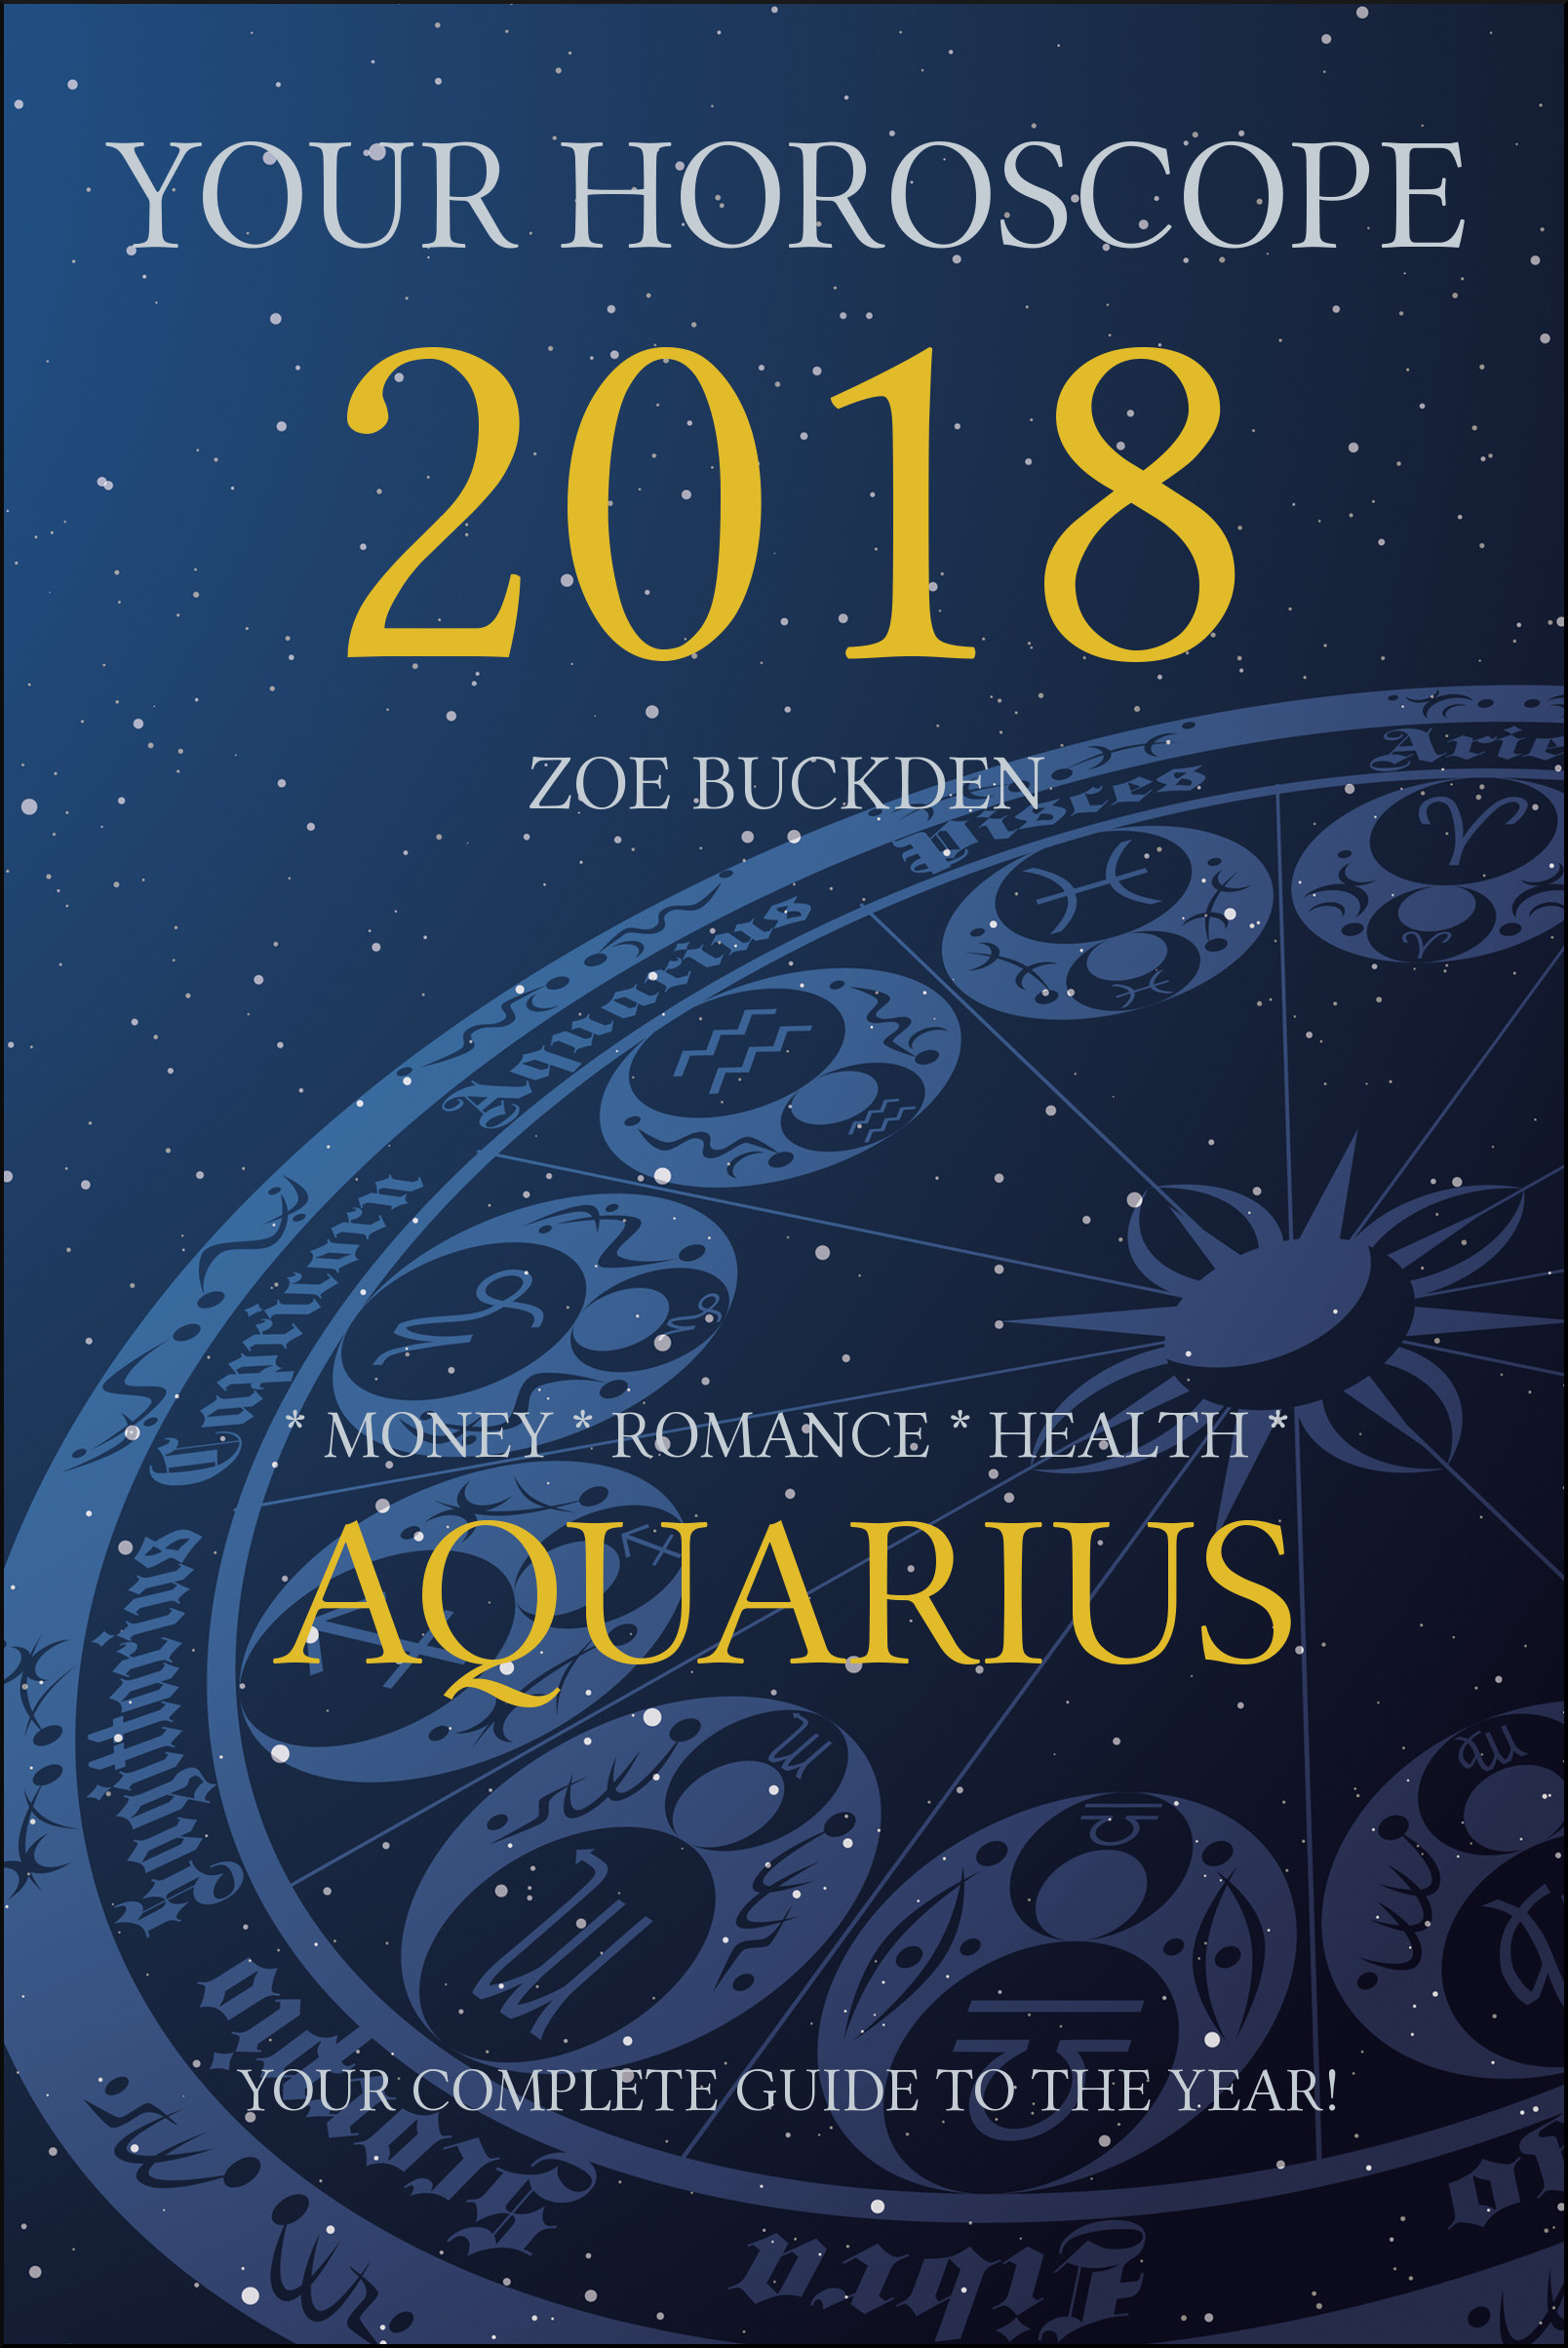 Your Horoscope 2018: Aquarius, an Ebook by Zoe Buckden